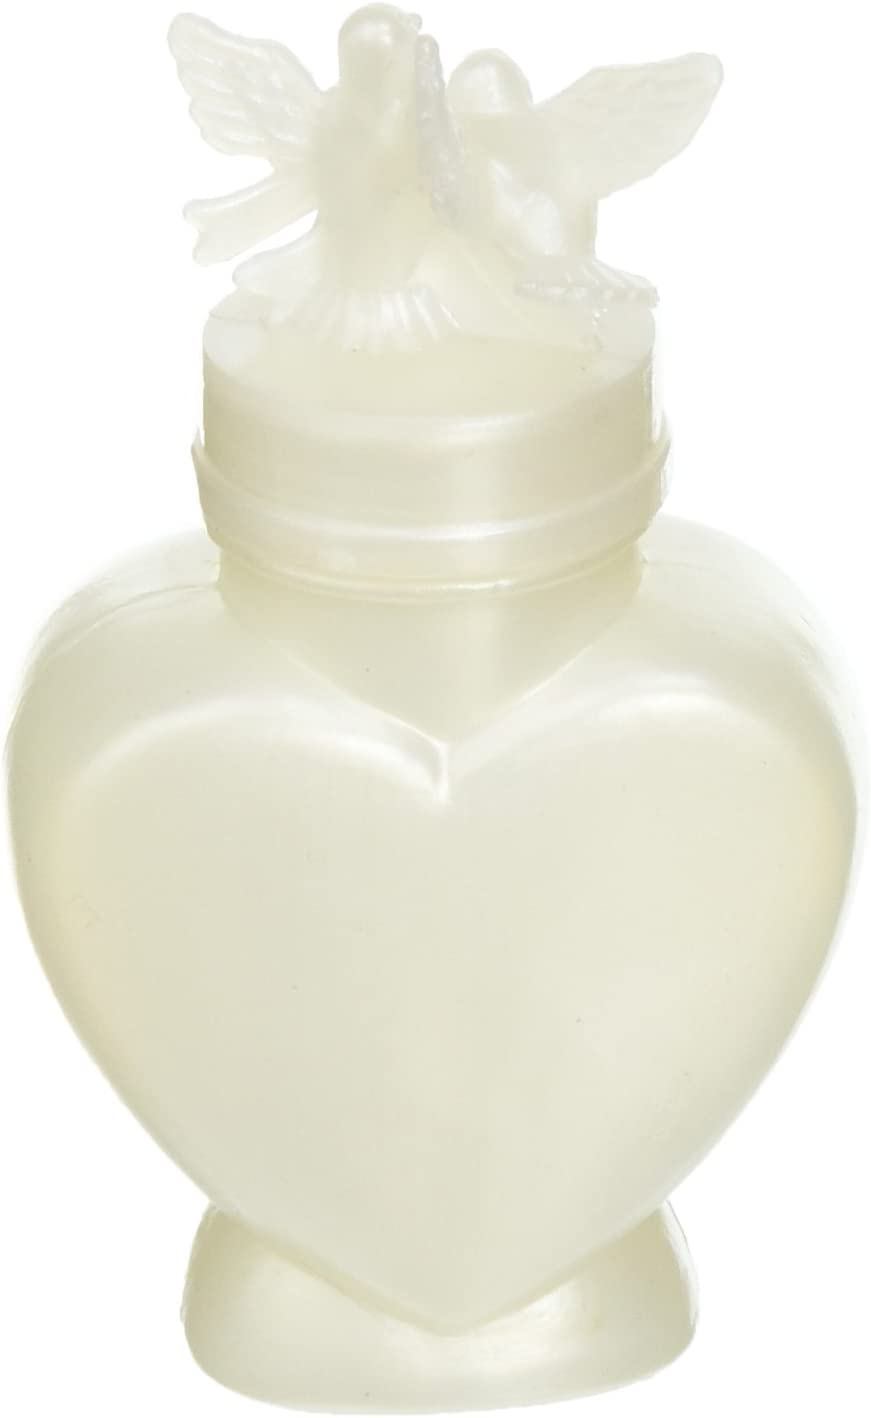 Darice Heart Shaped Bottle Wedding Bubbles – Perfect Way to Greet The Newly Married Couple – Great Wedding Favors – Safe for The Environment – Fun for Guests of All Ages, 24 Pieces Per Pack